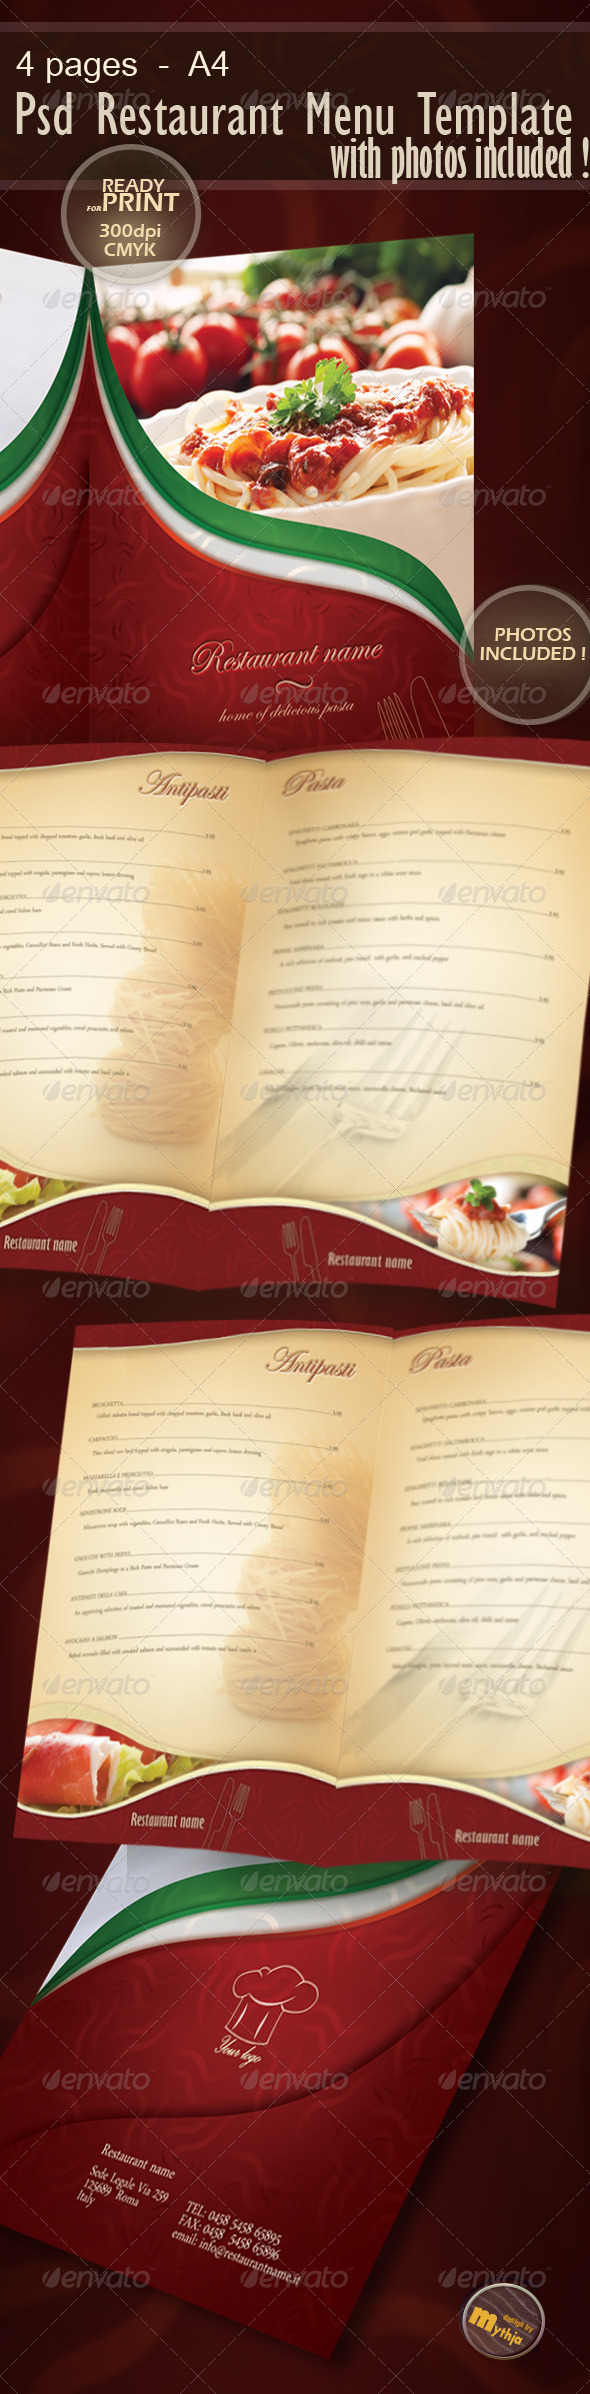 Restaurant Menu template with photos incuded